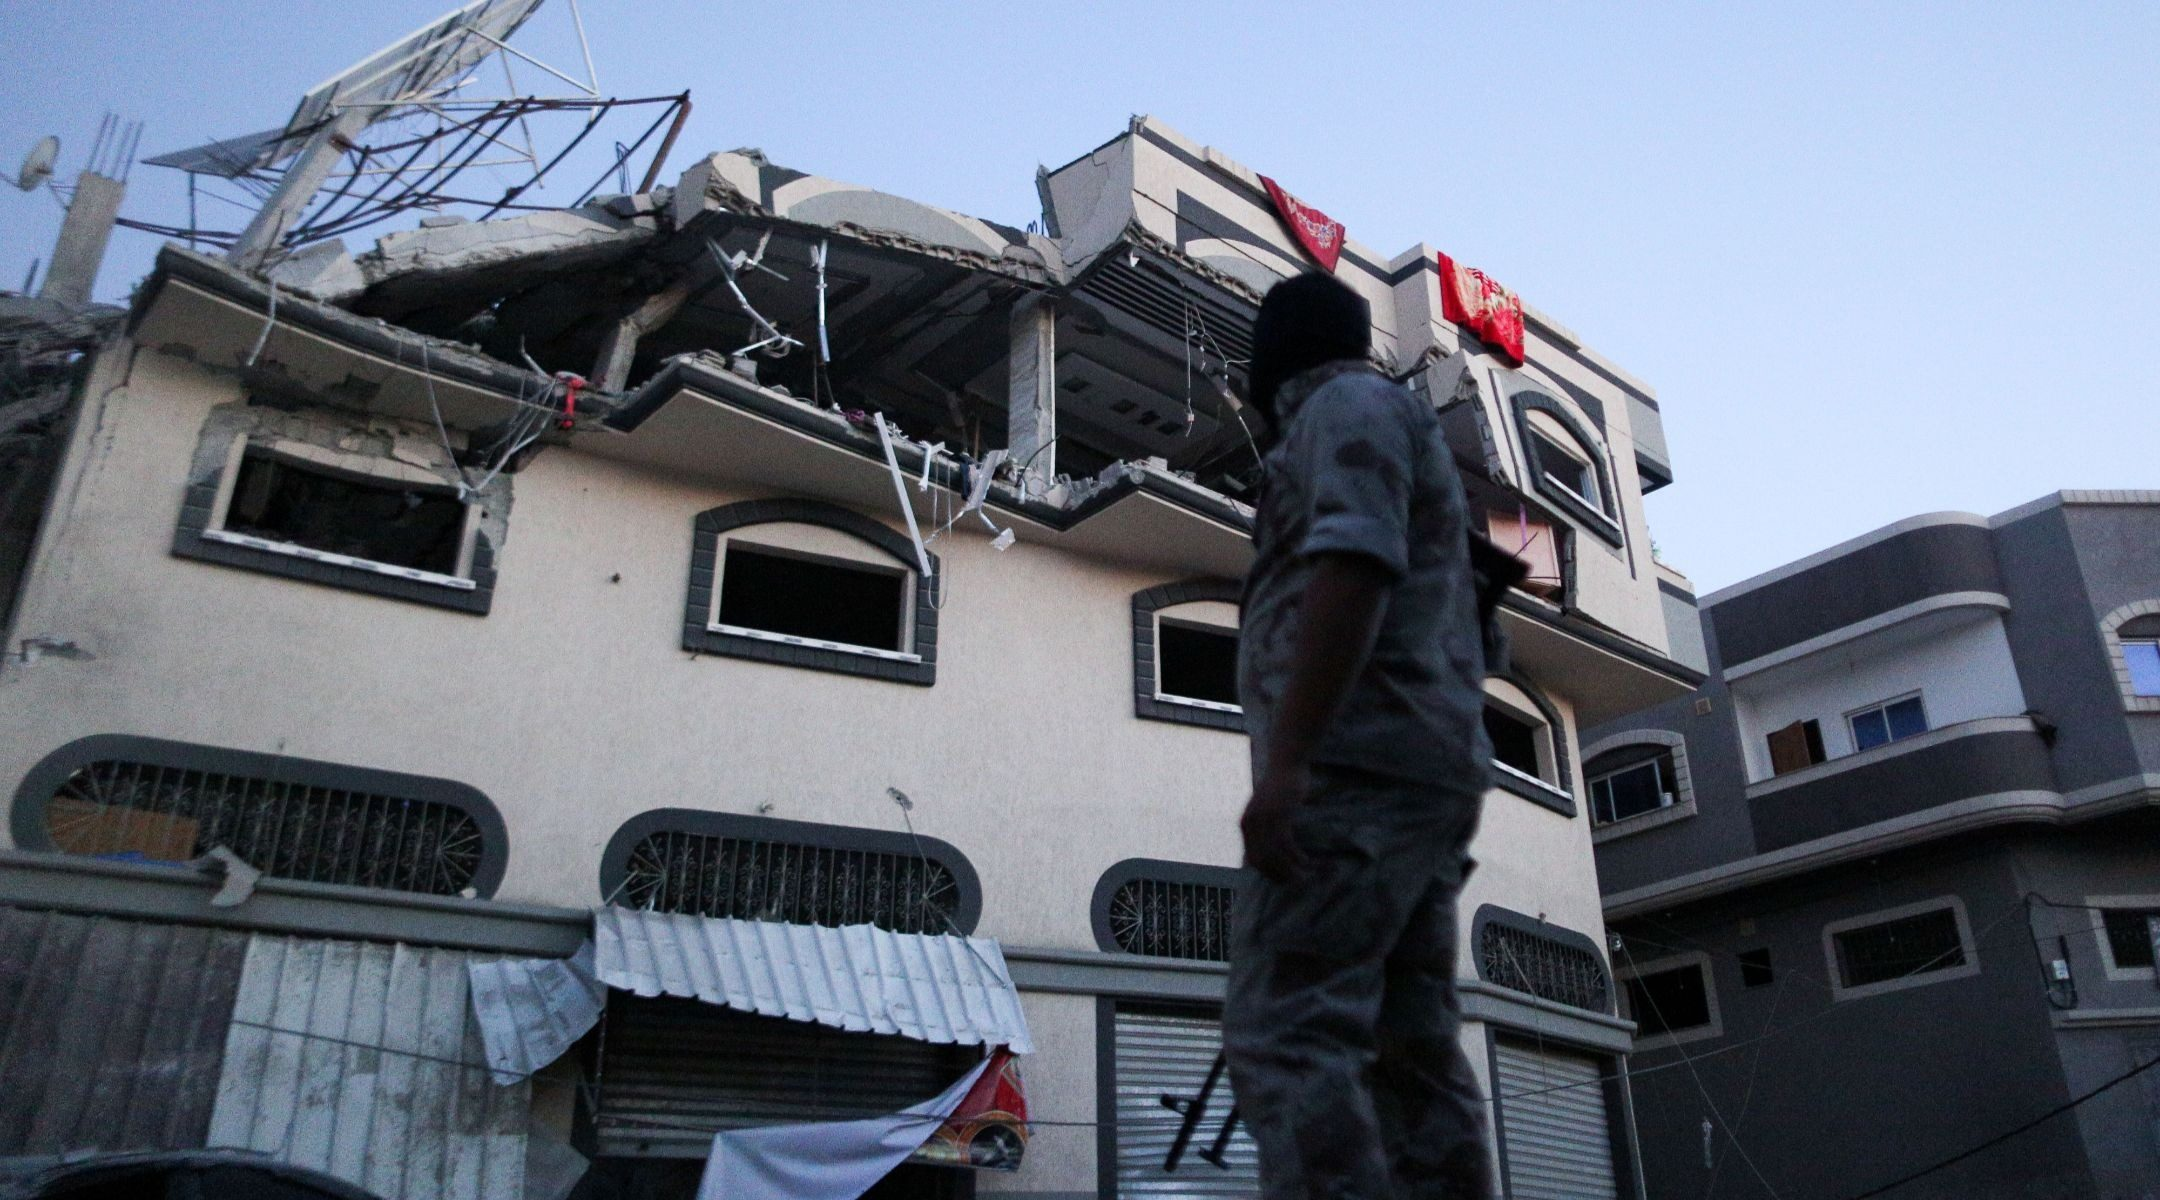 """The home of Palestinian Islamic Jihad senior commander Baha Abu al-Ata was hit by an Israeli air strike in Gaza City on Nov. 12, 2019, killing al-Ata and his wife in what the Israel Defense Forces called a """"surgical strike."""" (JTA/Hassan Jedi/Flash90)"""